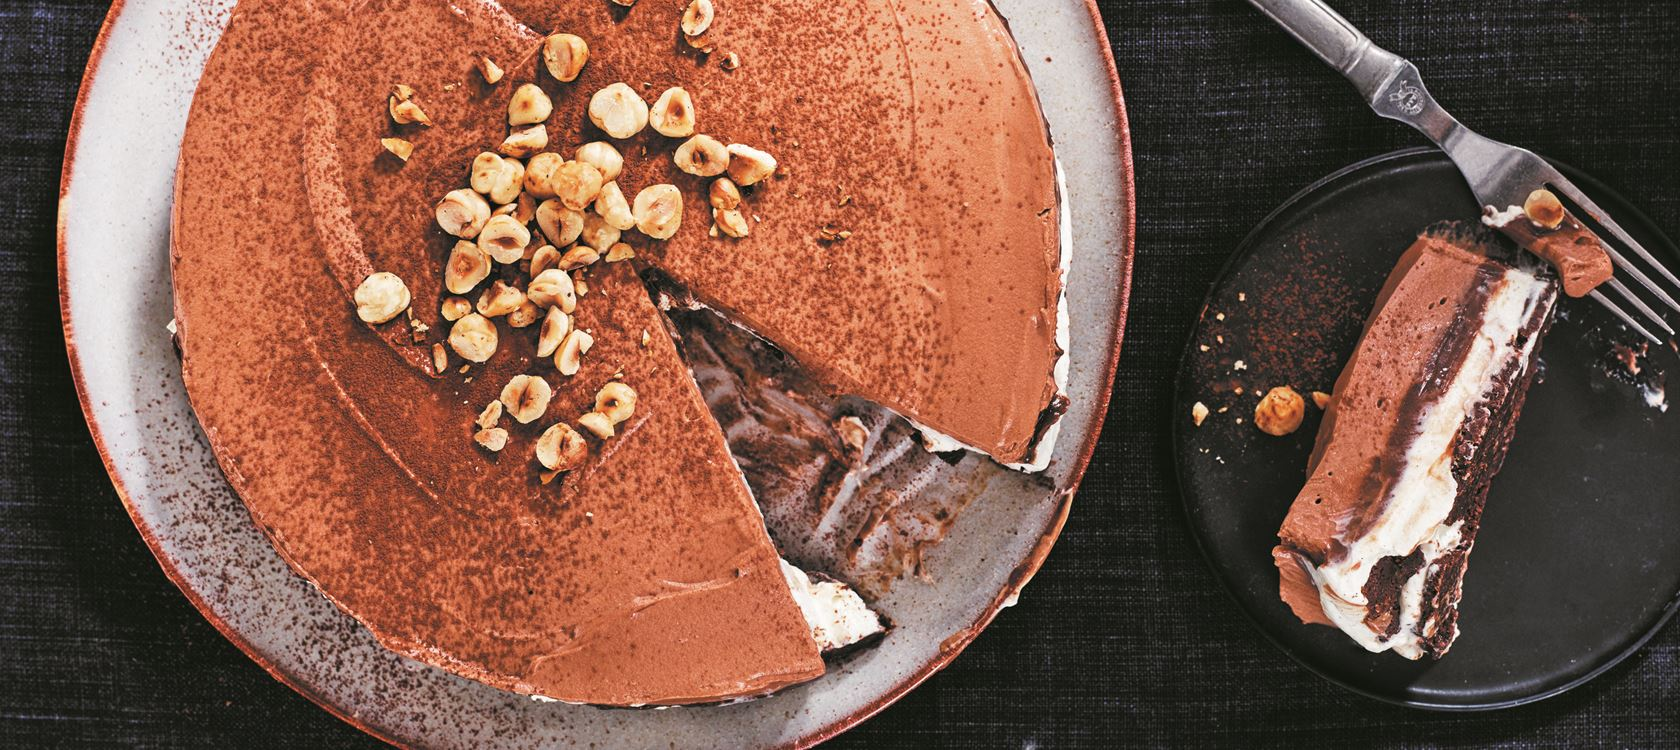 Chocolate Hazelnut Cheesecake with Vanilla